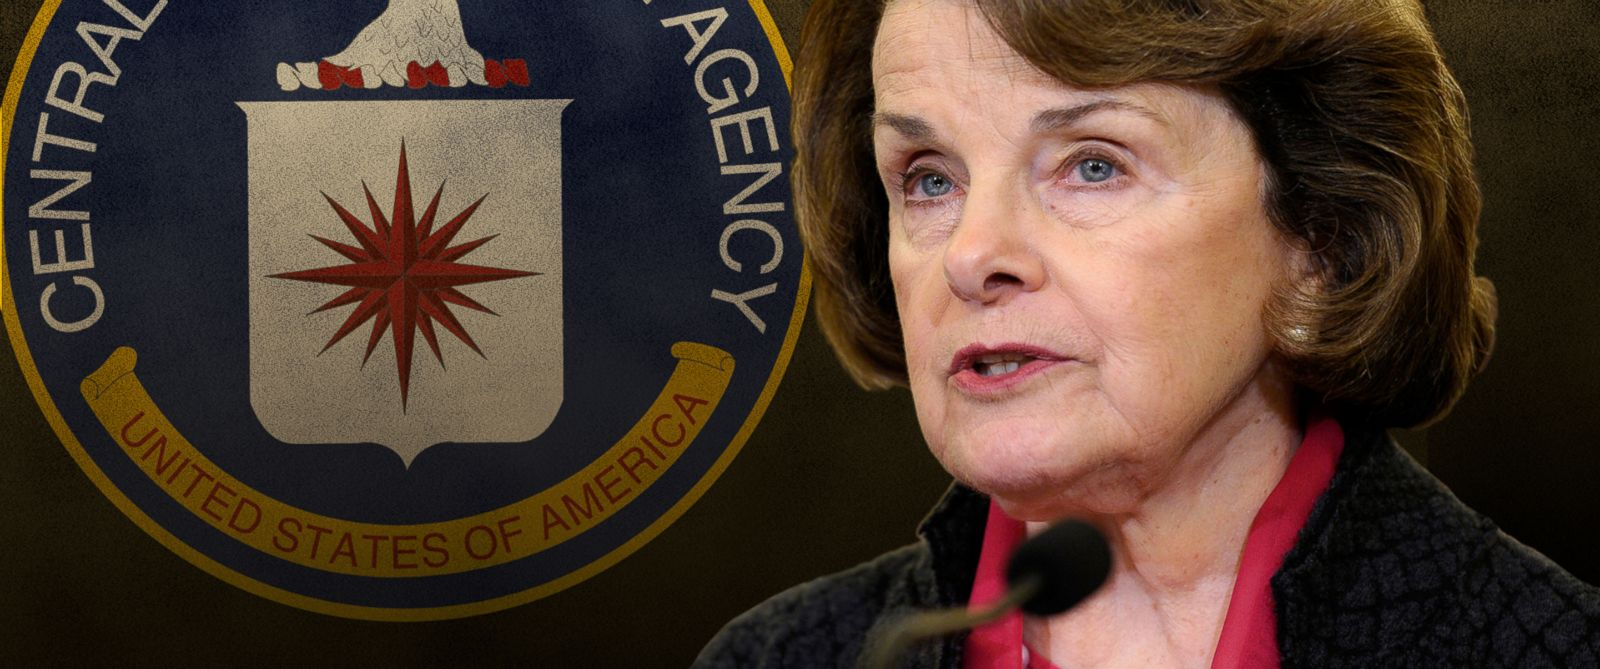 PHOTO: Dianne Feinstein with the CIA seal.